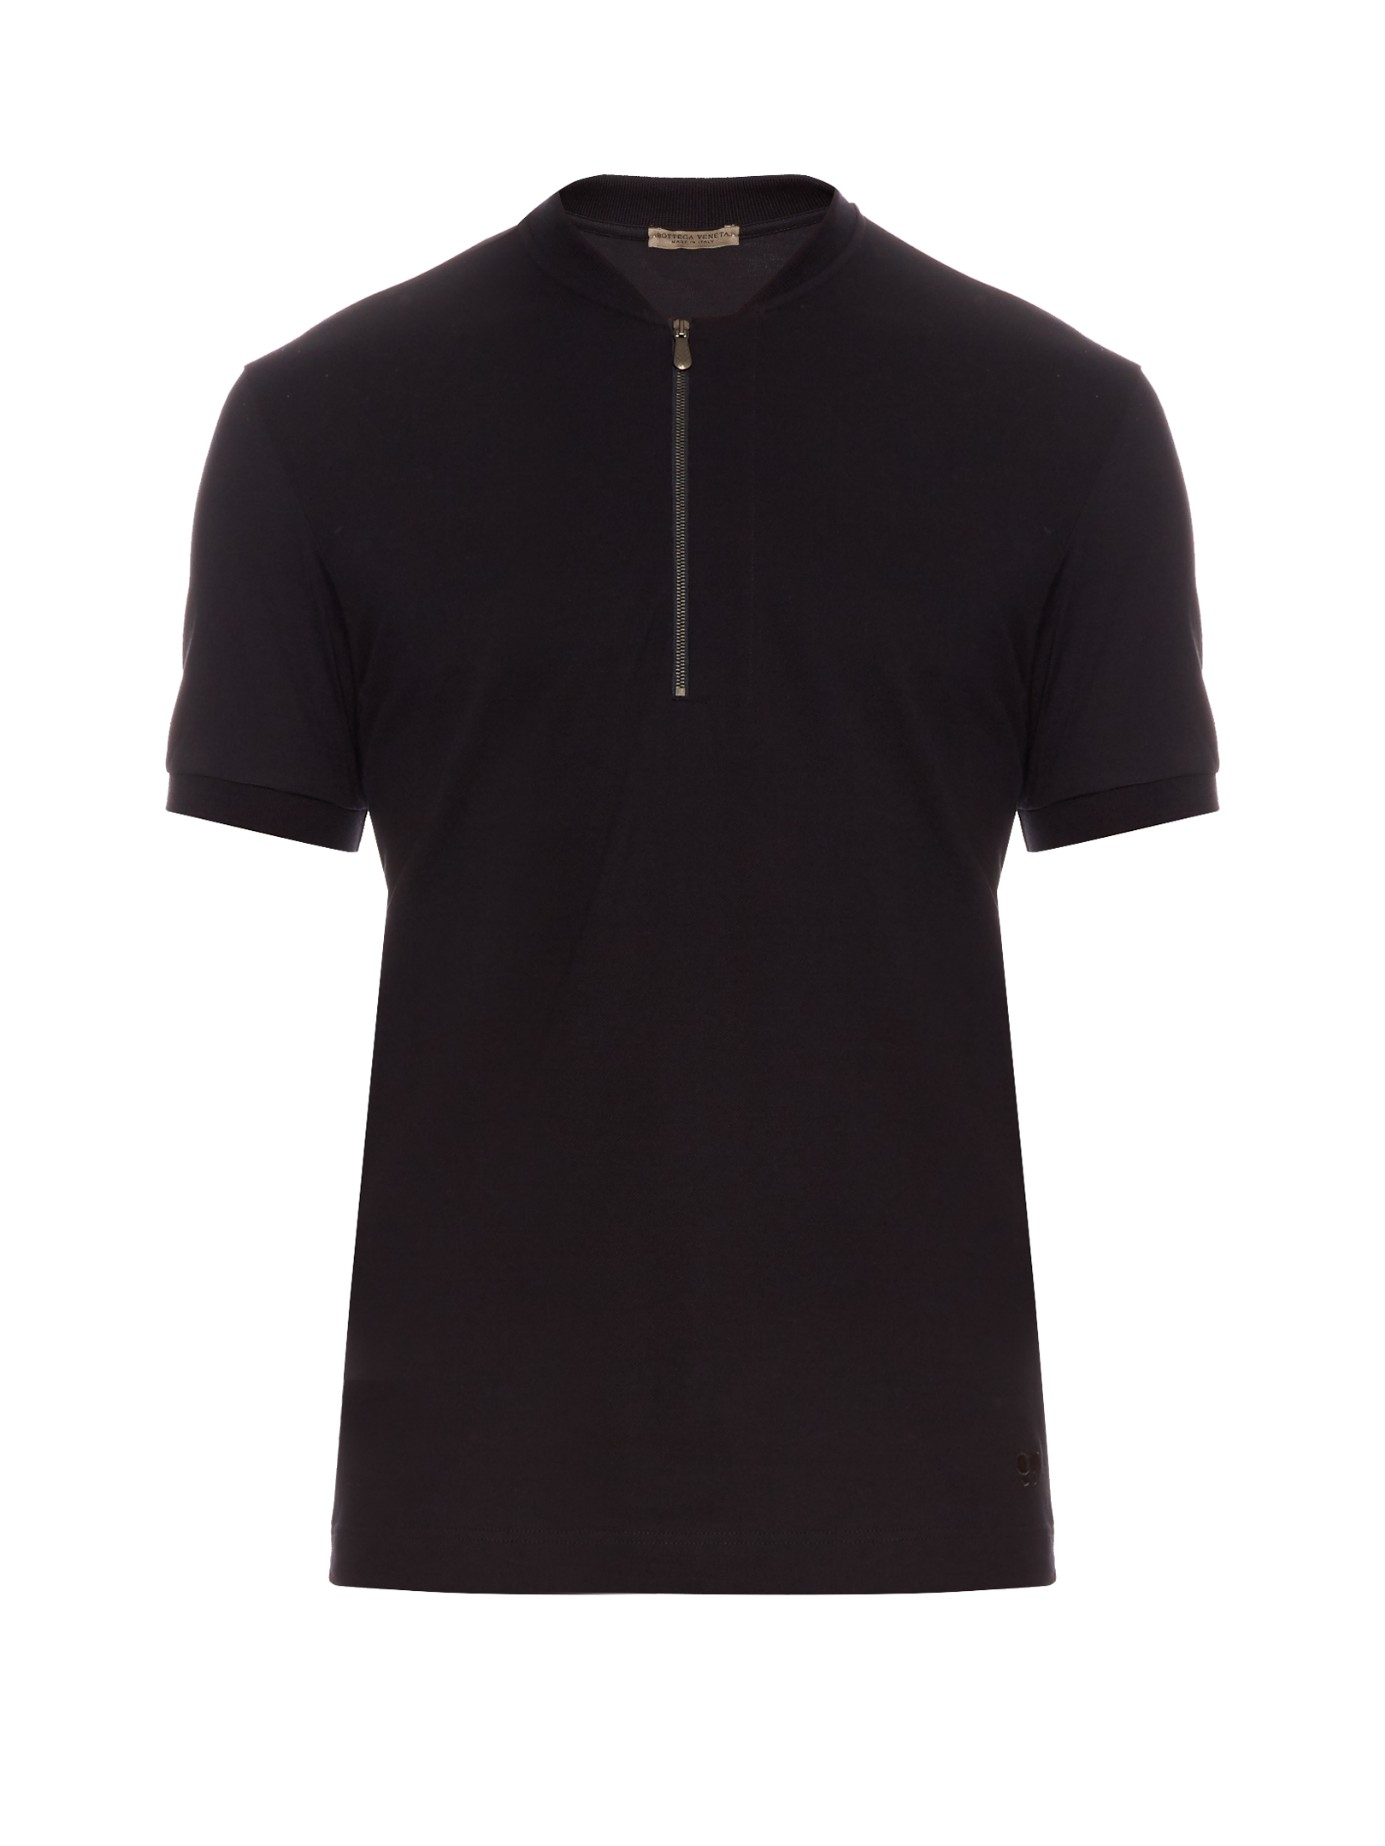 Bottega veneta logo embroidered cotton piqu polo shirt in for Bottega veneta t shirt